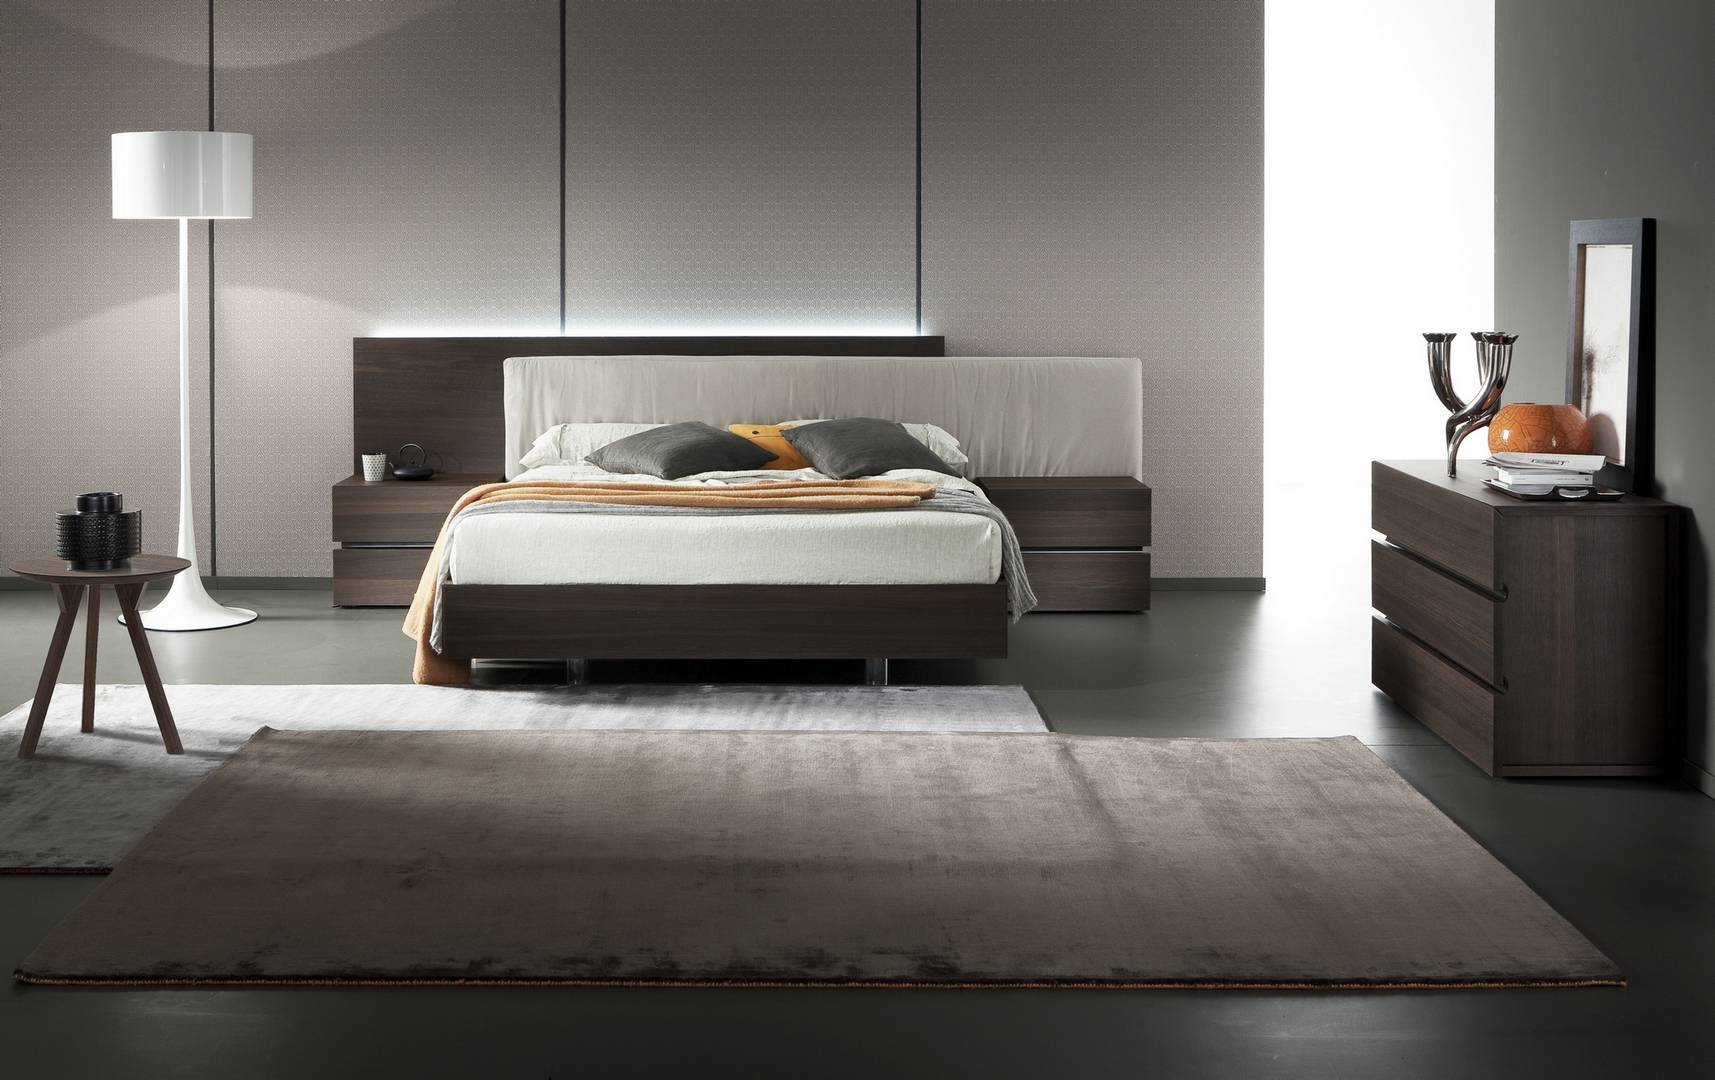 Bedroom Sets Collection  Master Bedroom Furniture. Made in Italy Wood Modern Contemporary Bedroom Sets San Diego